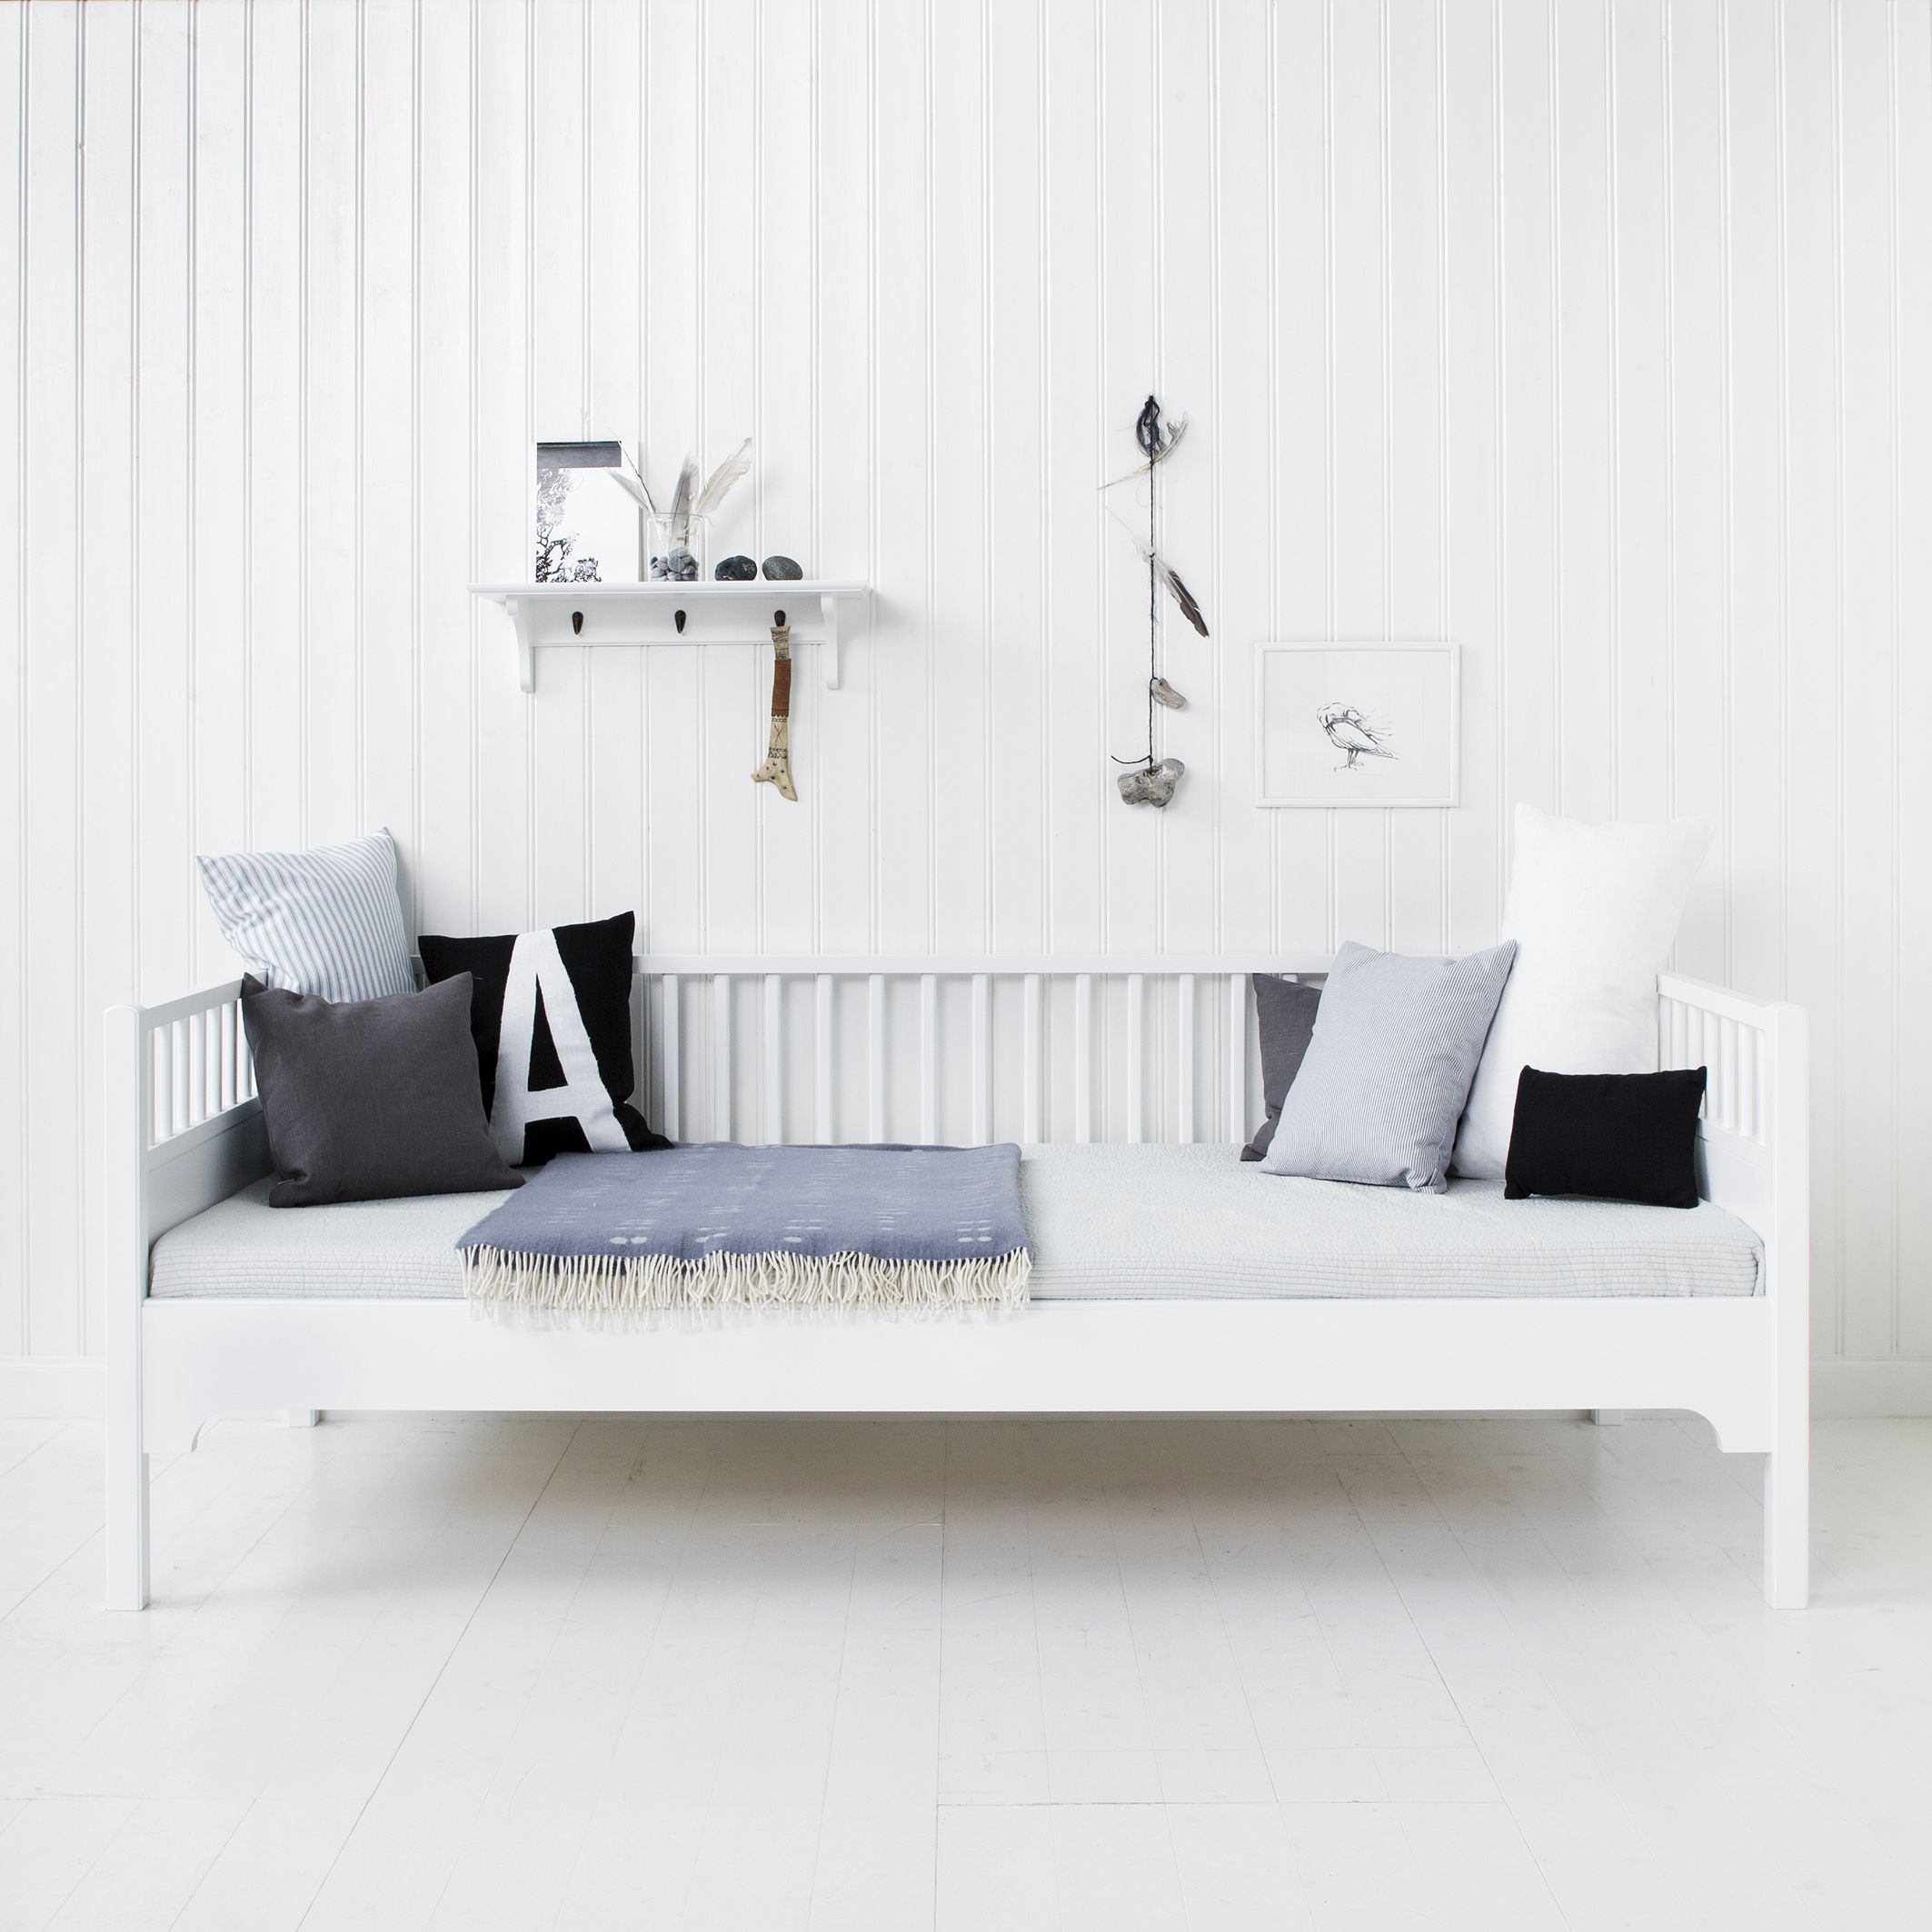 Day bed from Oliver Furniture in Nordic